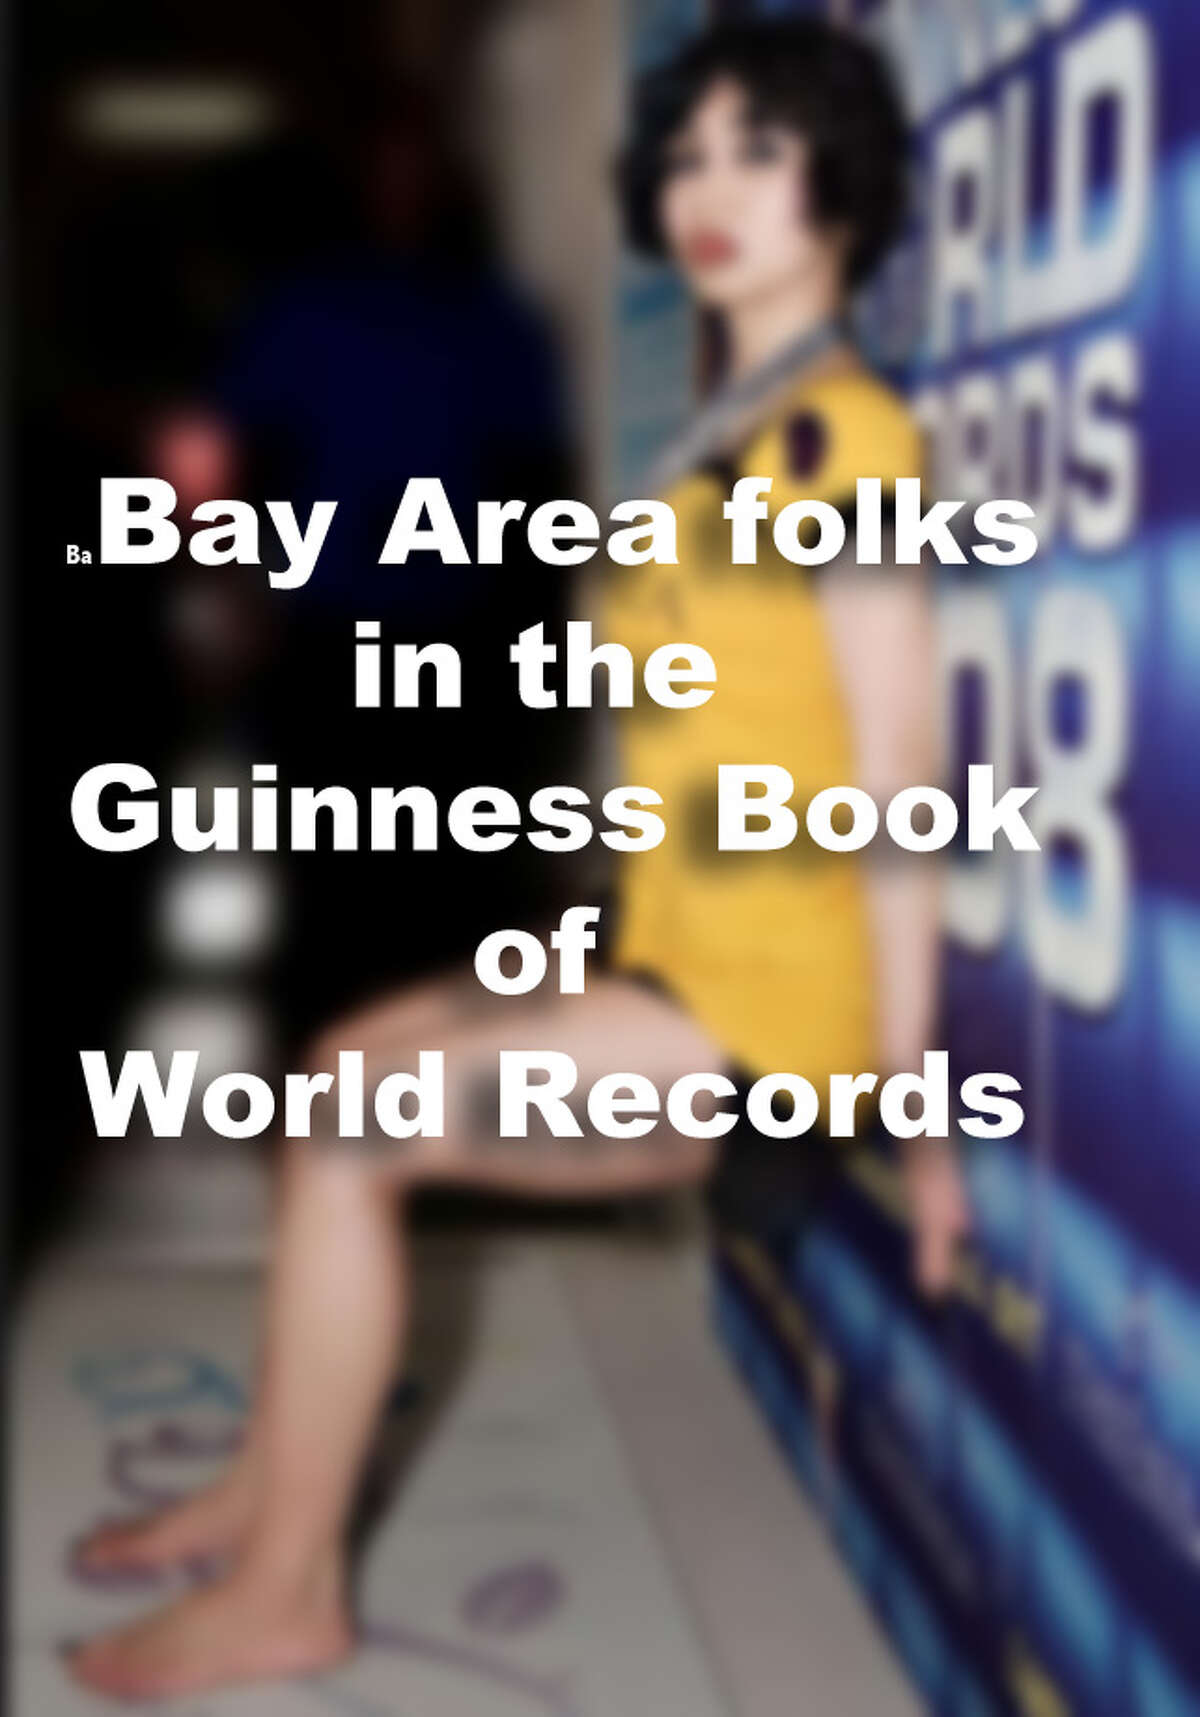 Bay Area folks in the Guinness Book of World Records